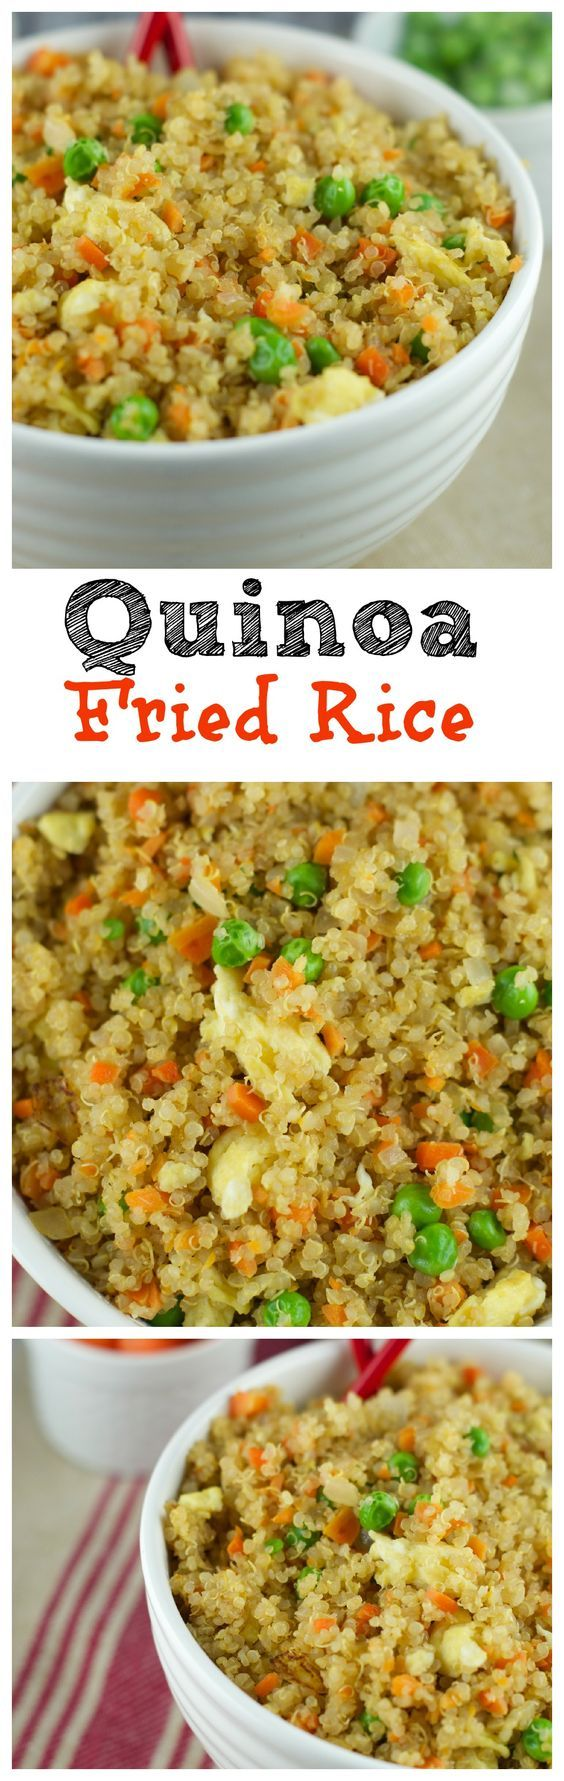 This Quinoa Fried Recipe requires only 10 minutes to make and it's so delicious. Fresh veggies and quinoa make a healthy and satisfying combination. Try it!: